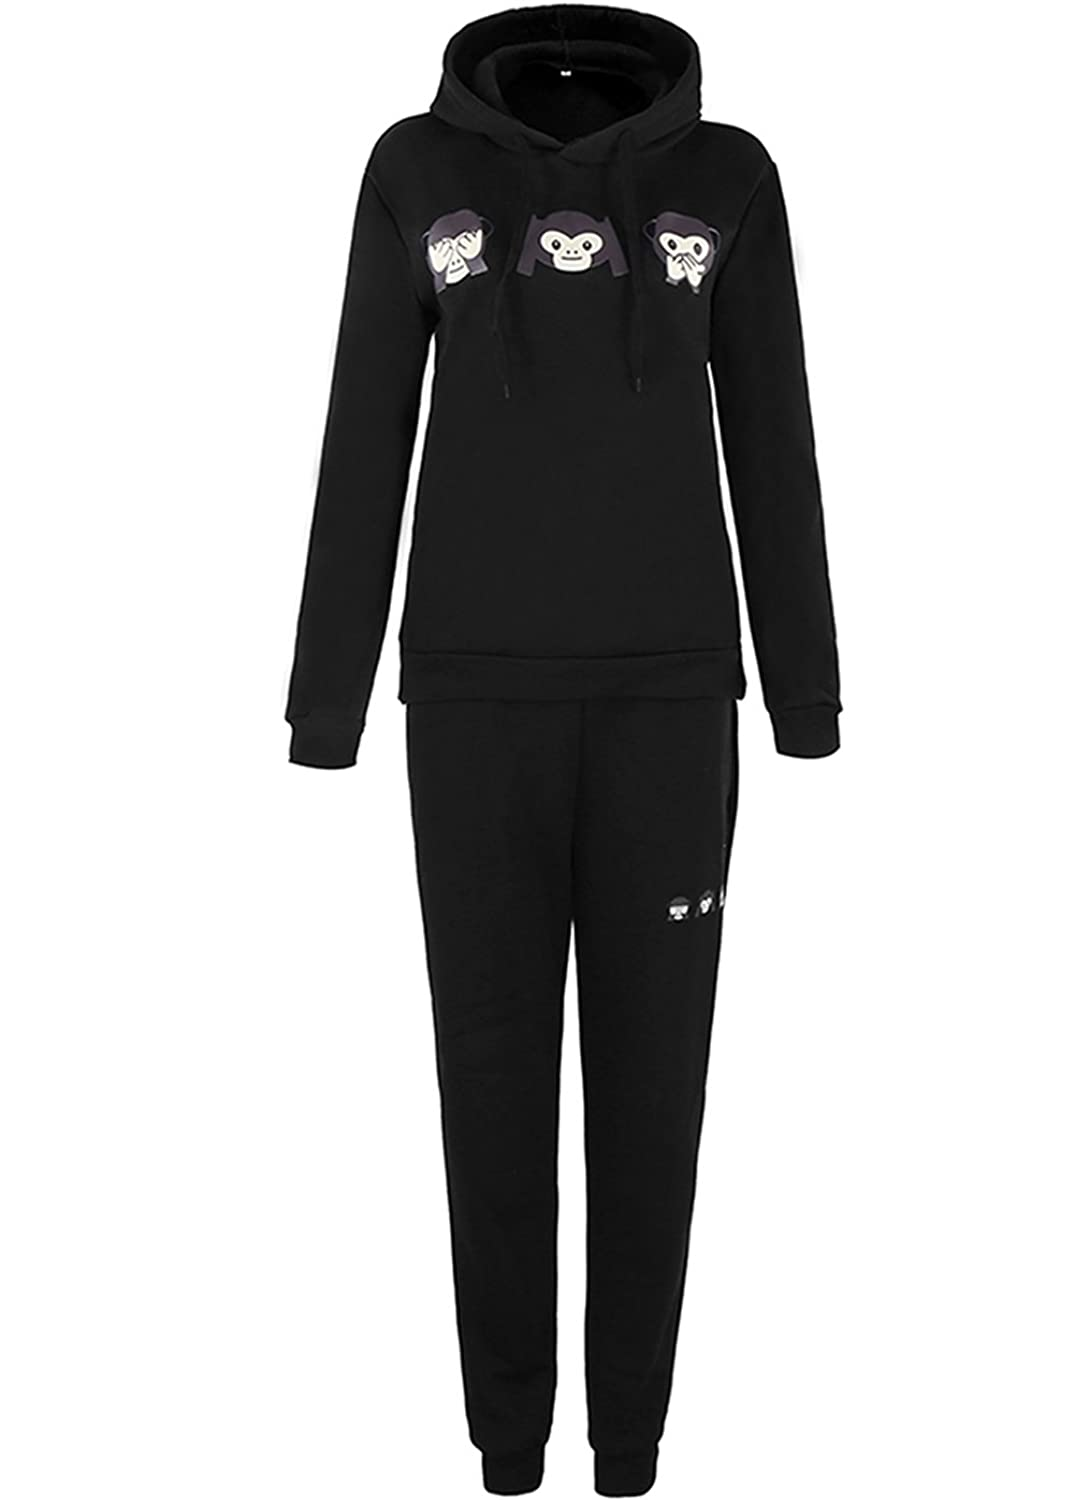 5b37029c6a Emoji sweatshirt and pants tofu house jpg 1075x1500 Emoji pants